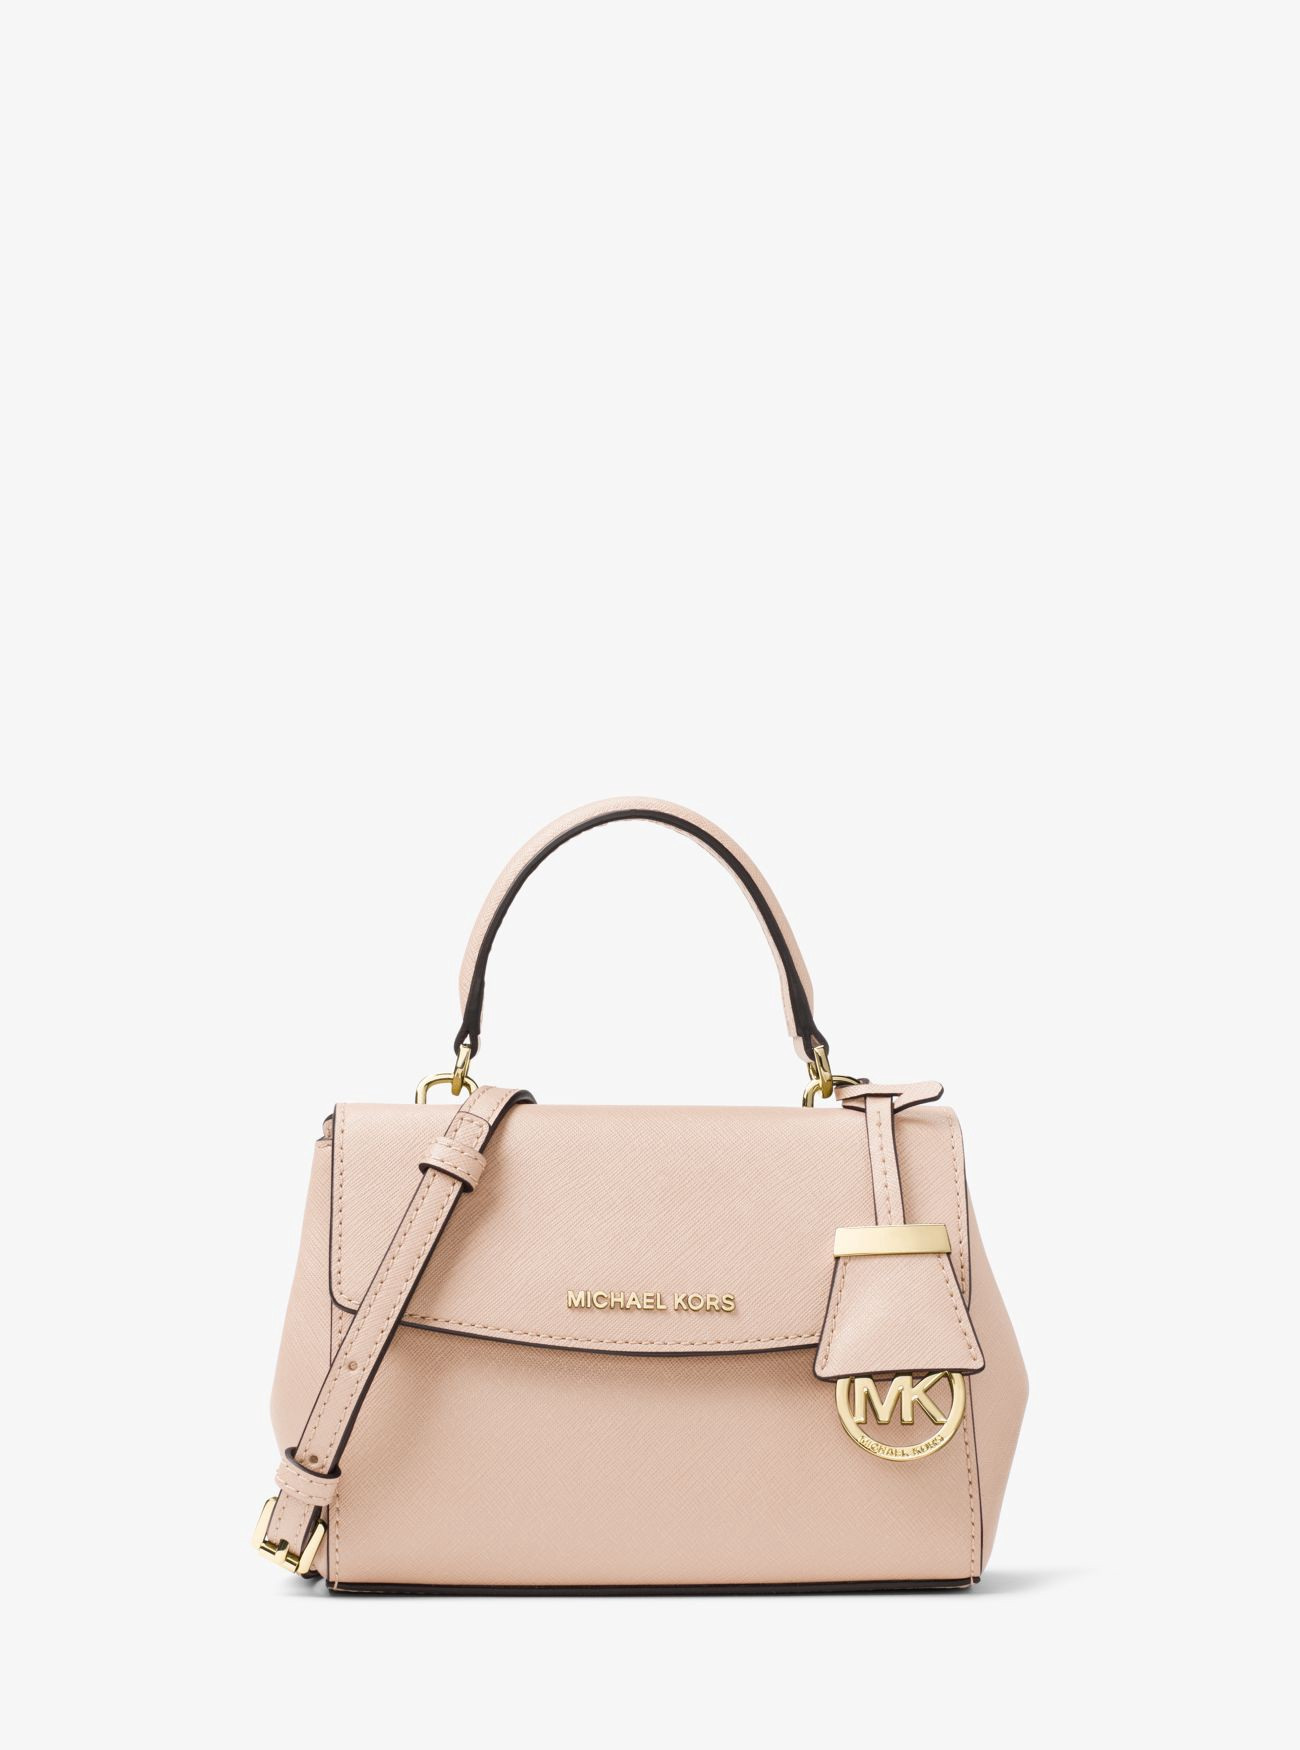 ecc4e9164e3f Michael Kors Ava Extra-Small Saffiano Leather Crossbody In Soft Pink ...